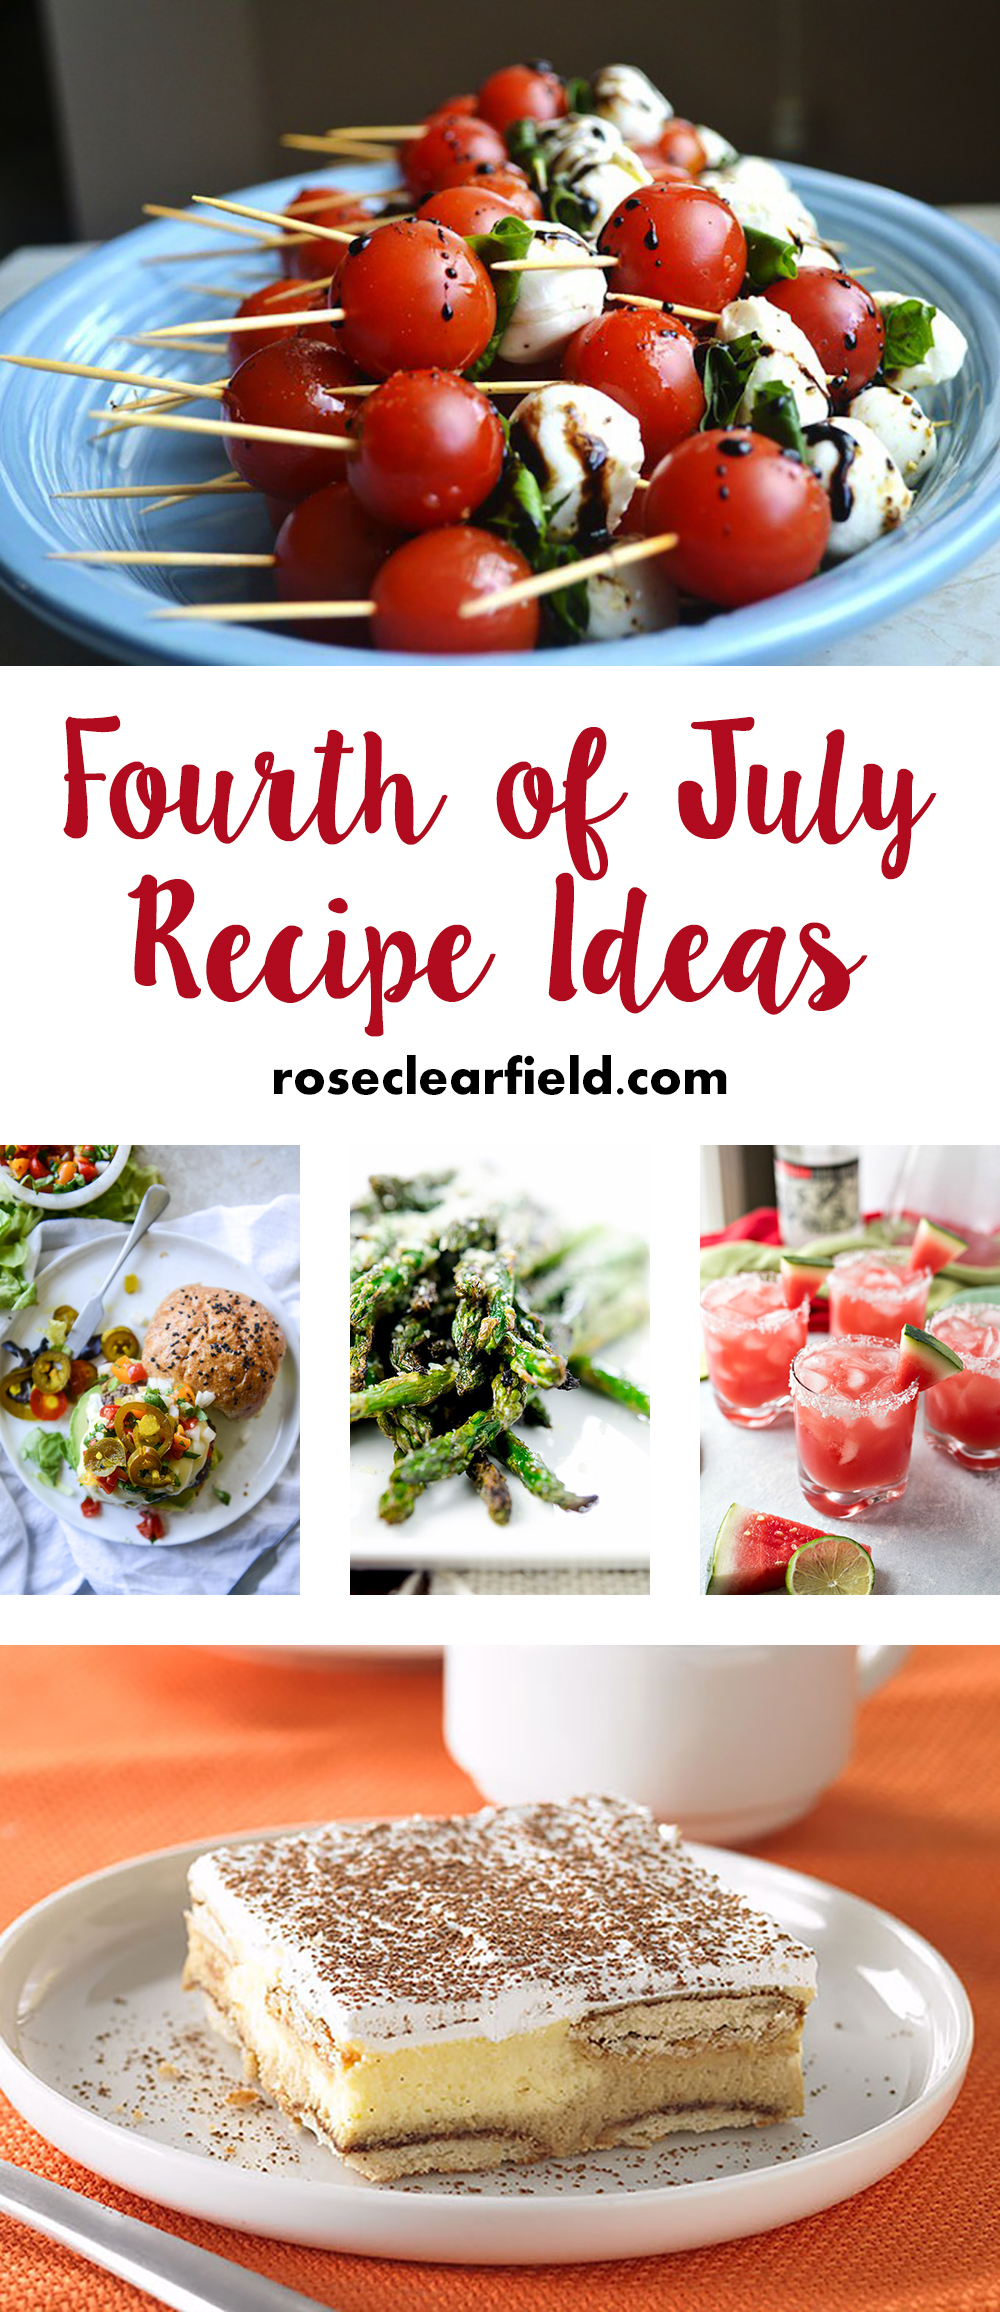 Fourth of July Recipe Ideas | http://www.roseclearfield.com